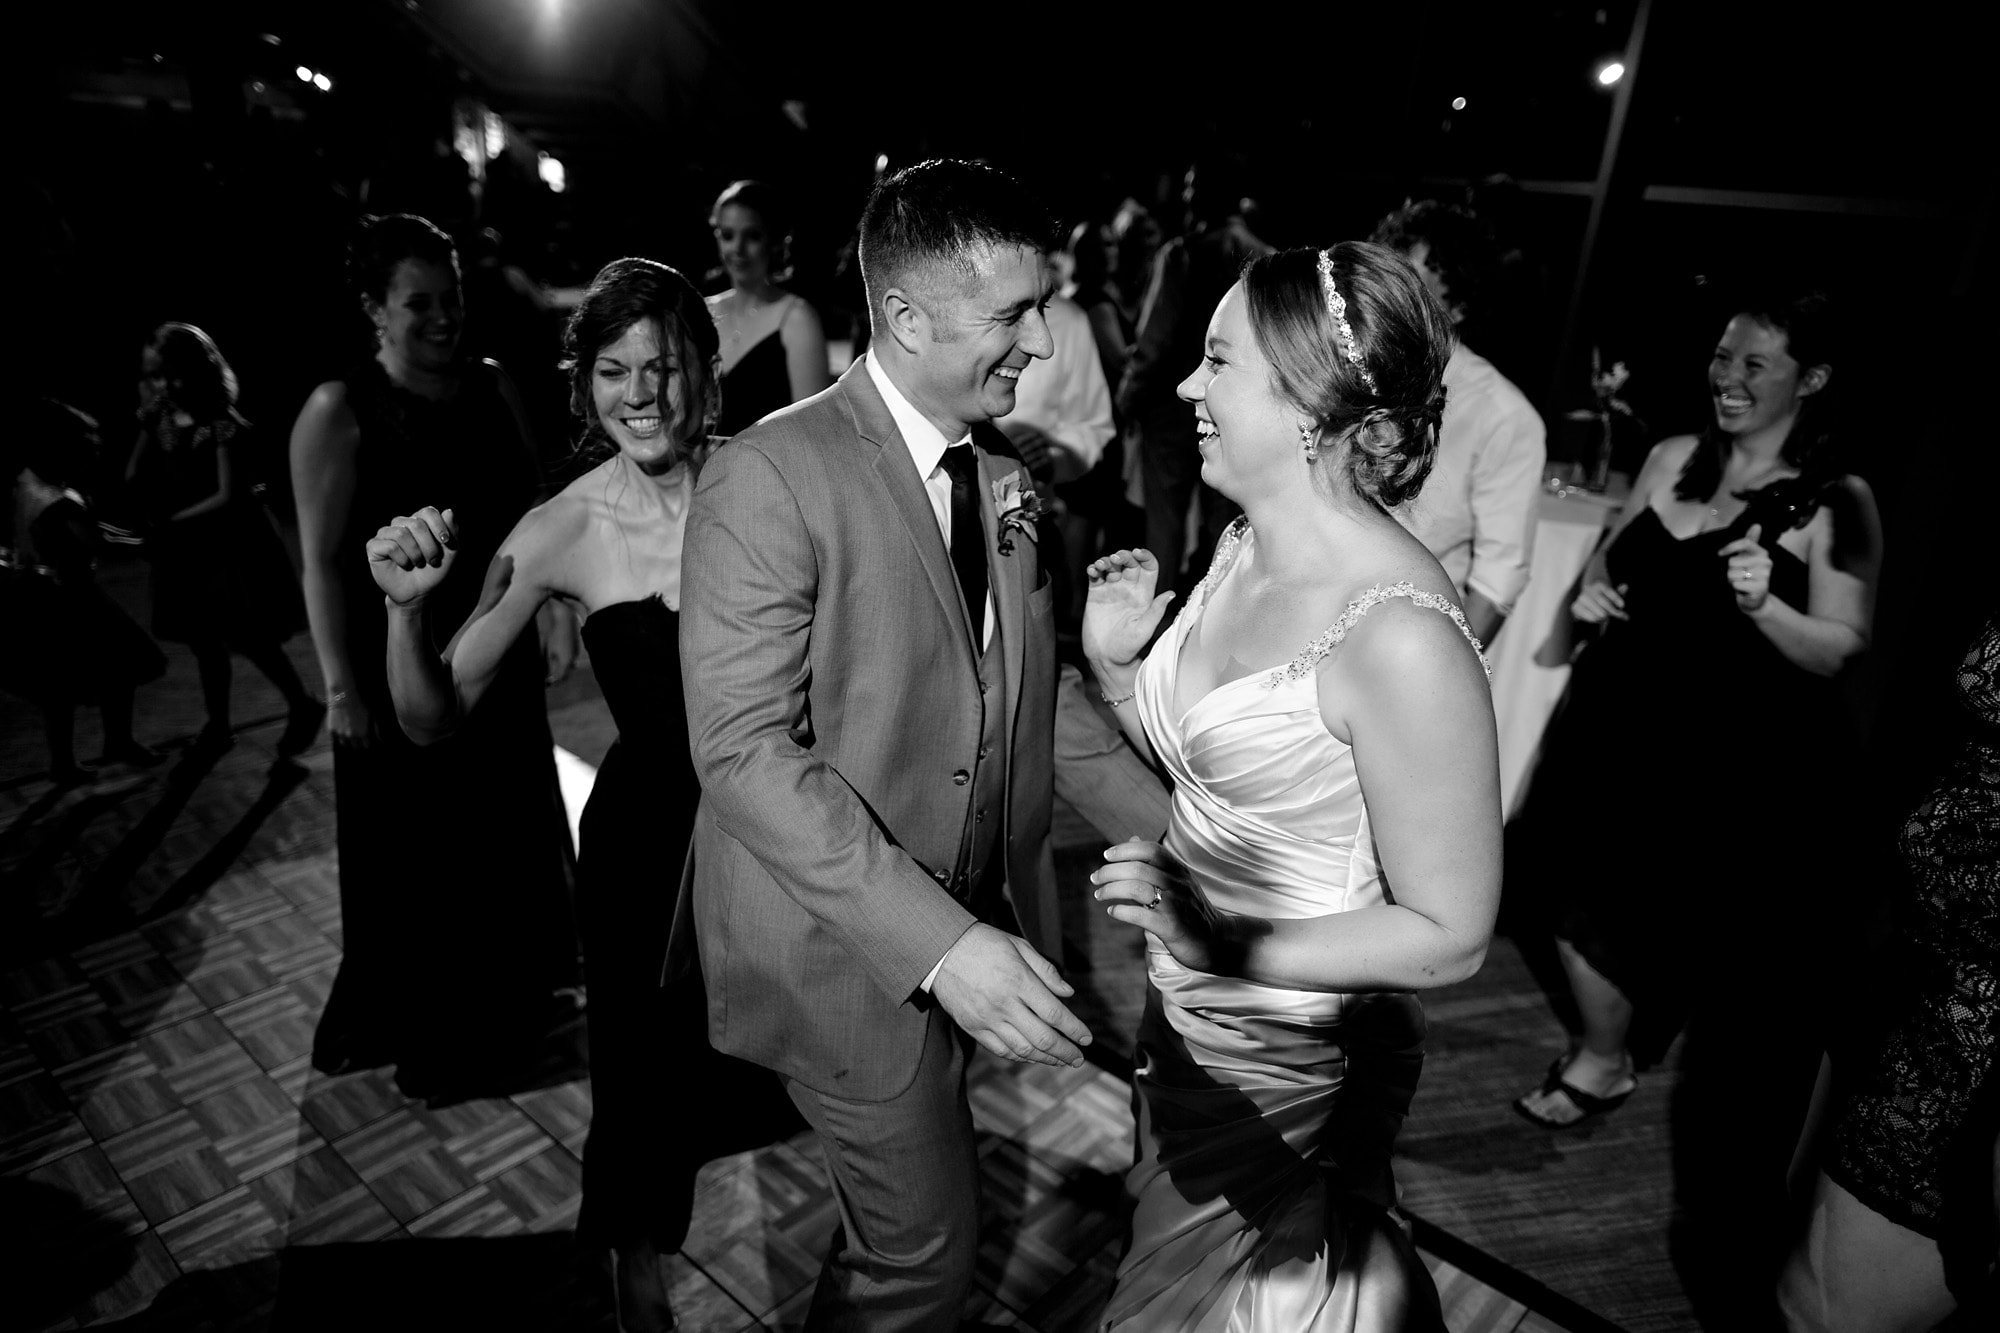 The bride and groom dance together in the west atrium of the Denver Museum of Nature and Science during their wedding